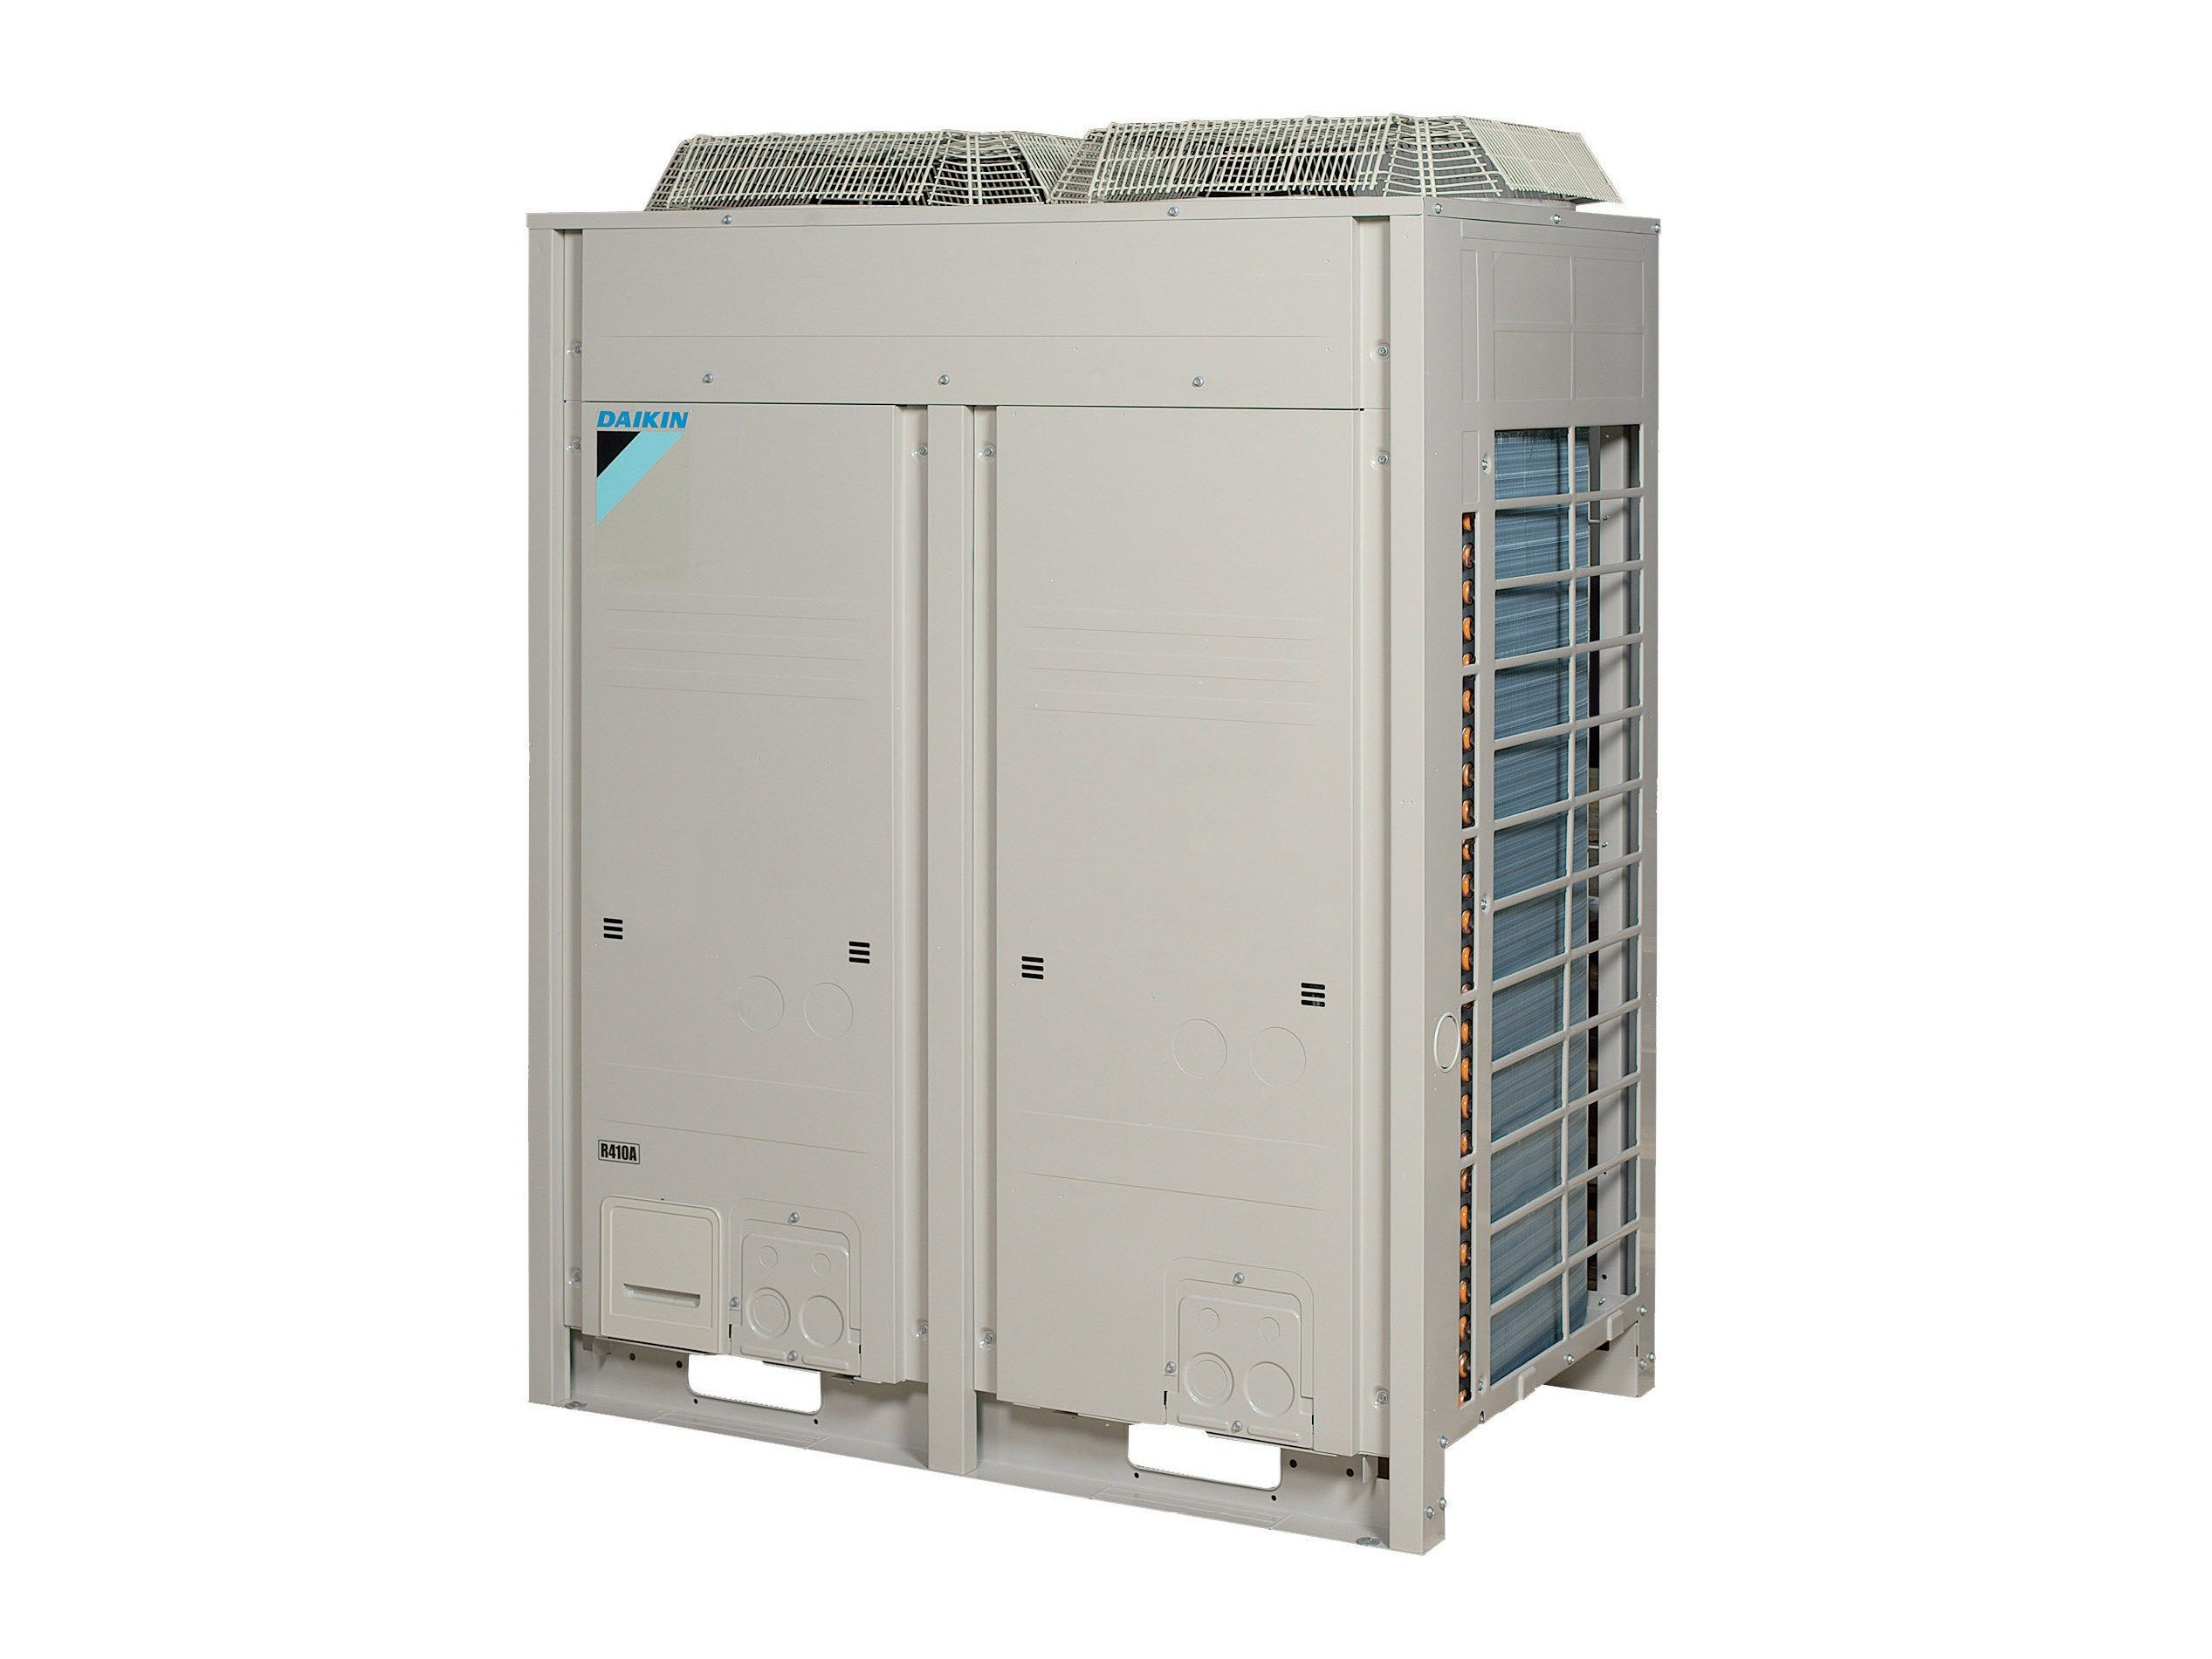 AIr refrigeration unit CONVENIPACK AC17 by DAIKIN Air